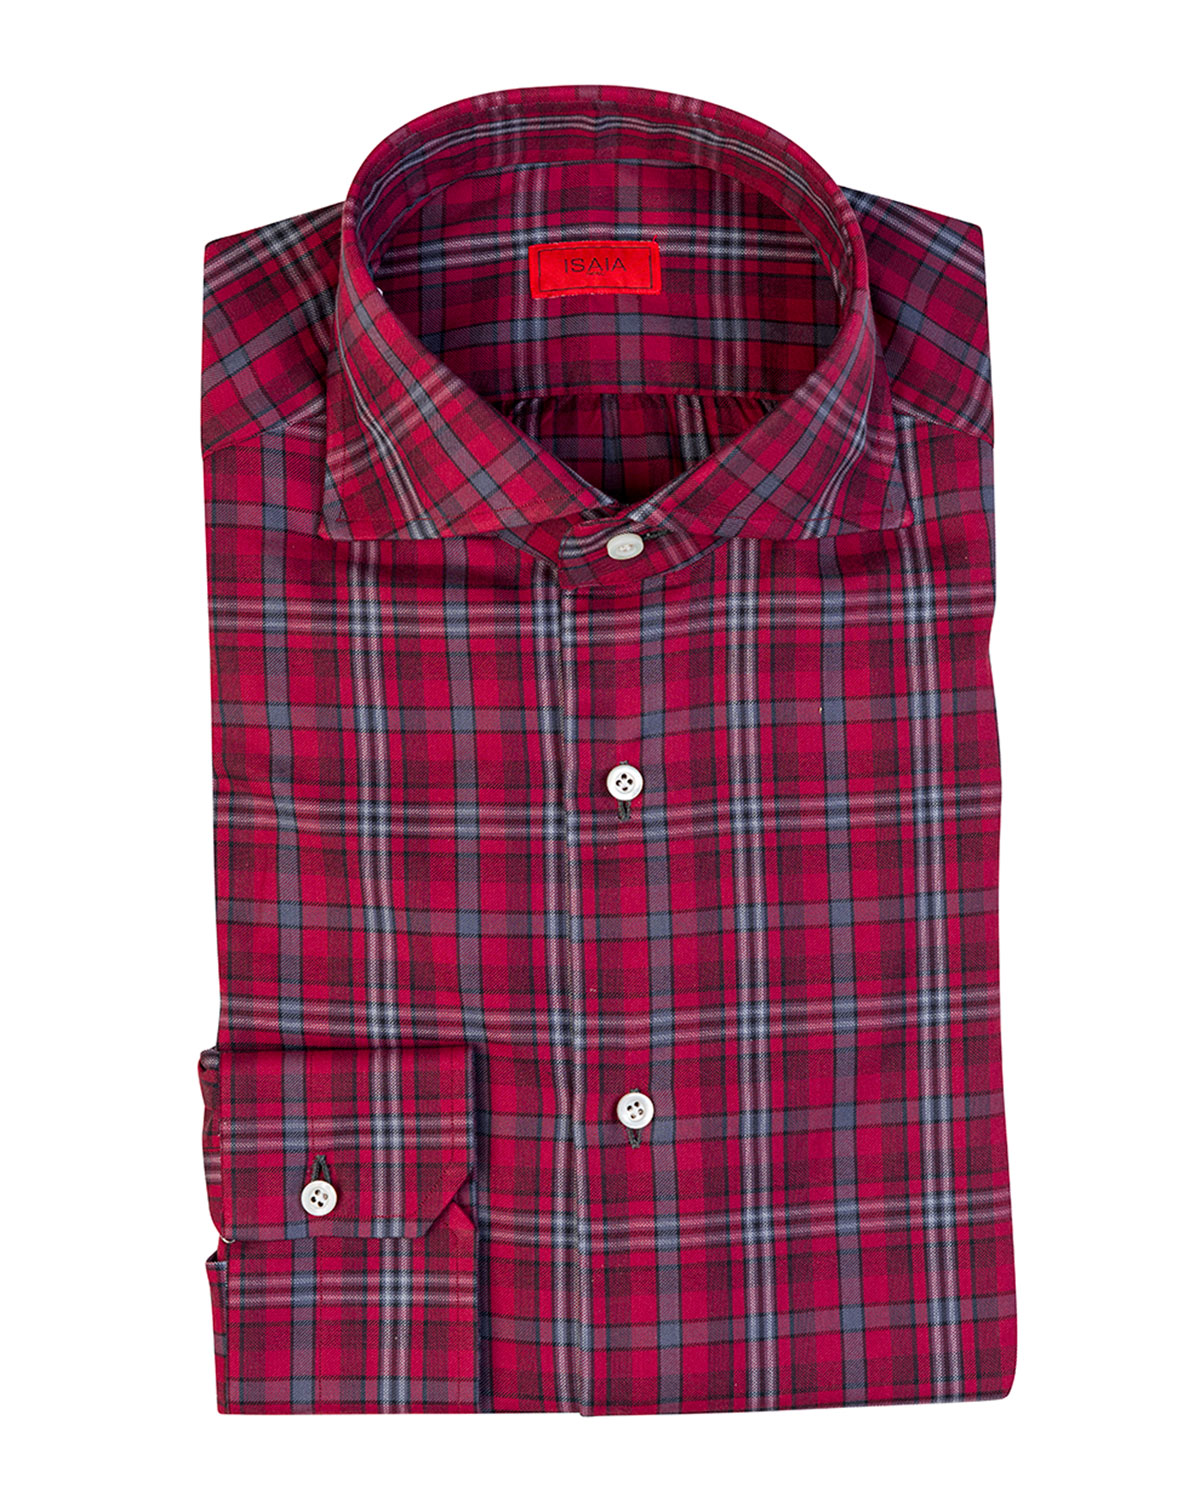 Men's Plaid Cotton Sport Shirt